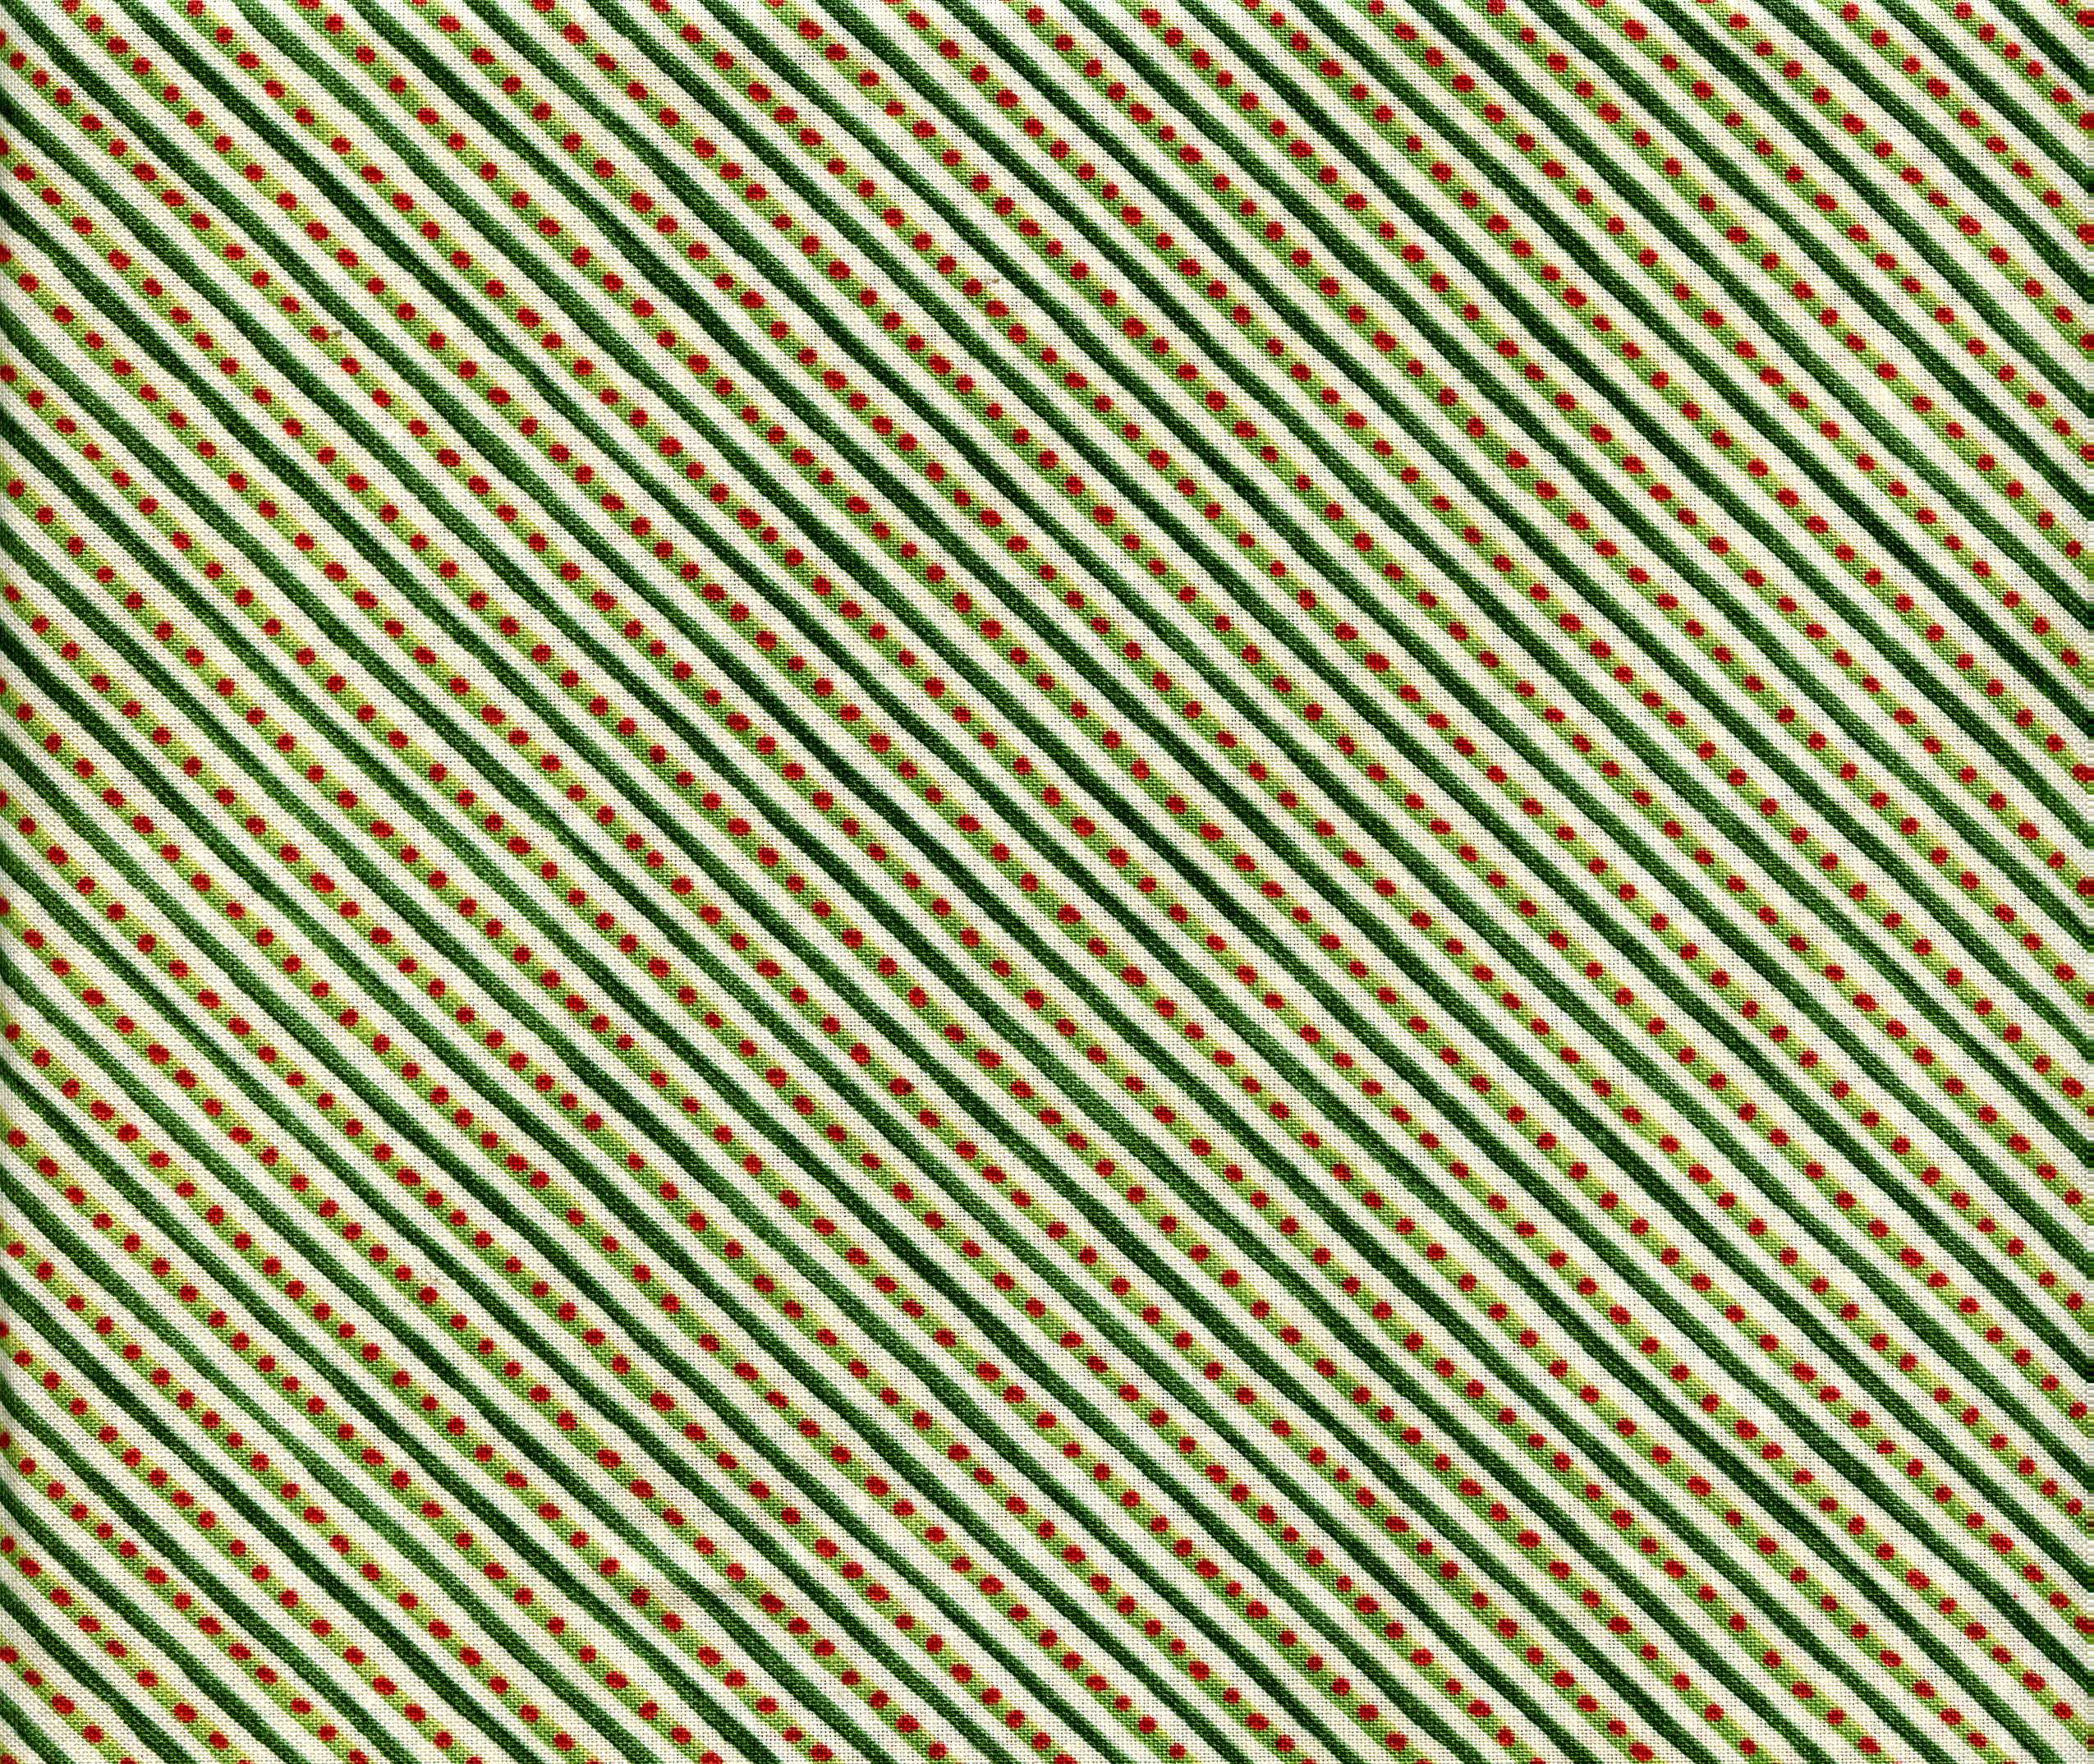 12 Days of Christmas-Green Stripe